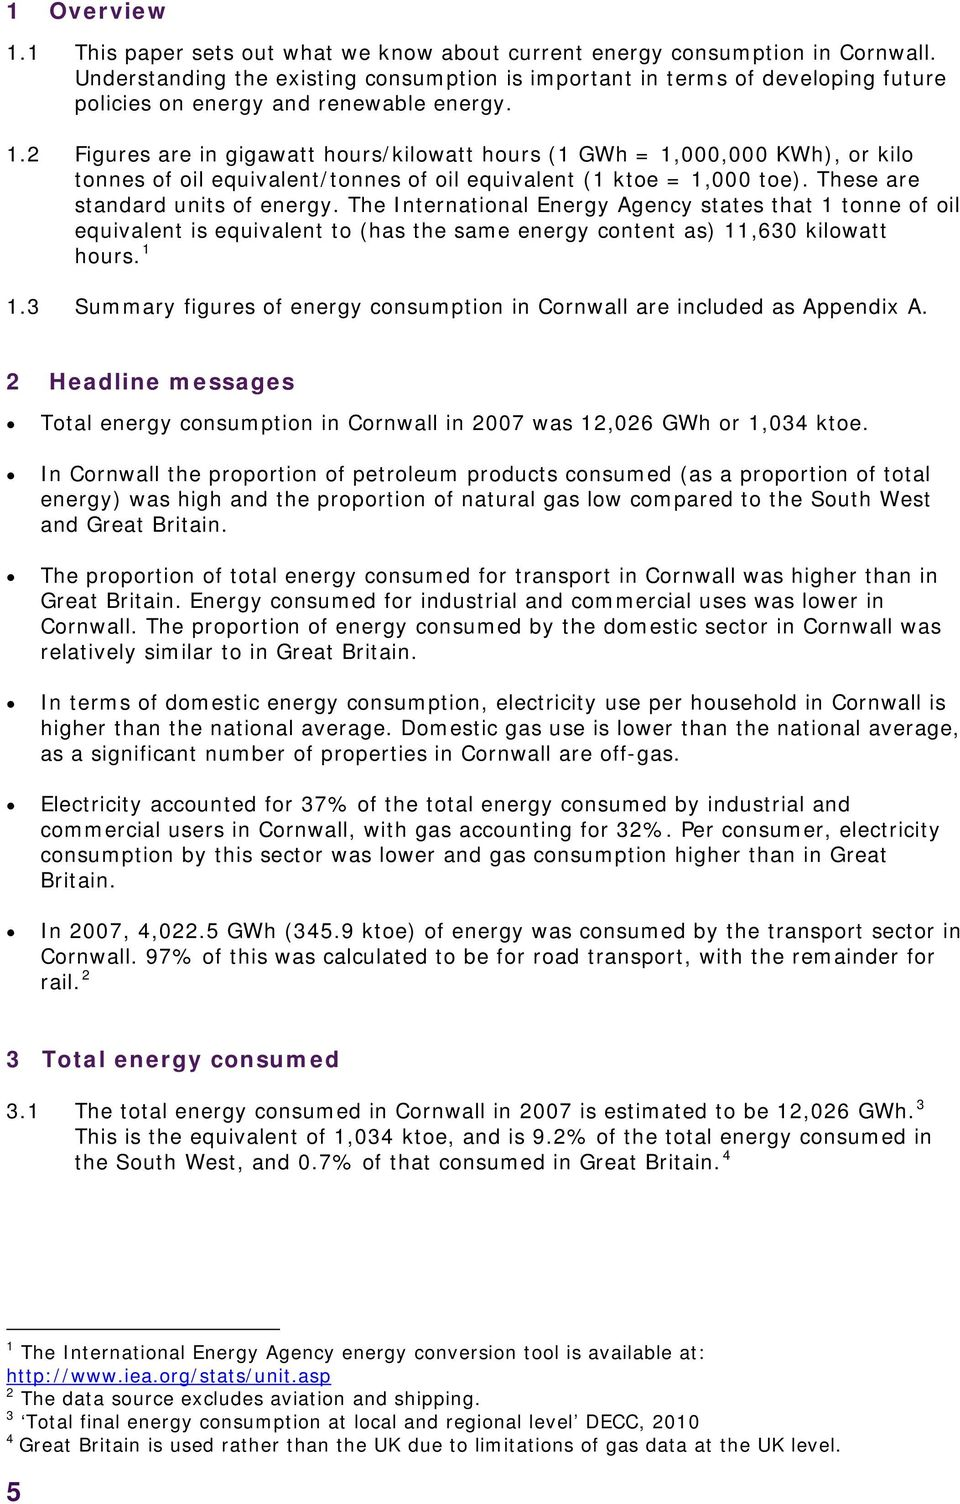 2 Figures are in gigawatt hours/kilowatt hours (1 GWh = 1,000,000 KWh), or kilo tonnes of oil equivalent/tonnes of oil equivalent (1 ktoe = 1,000 toe). These are standard units of energy.